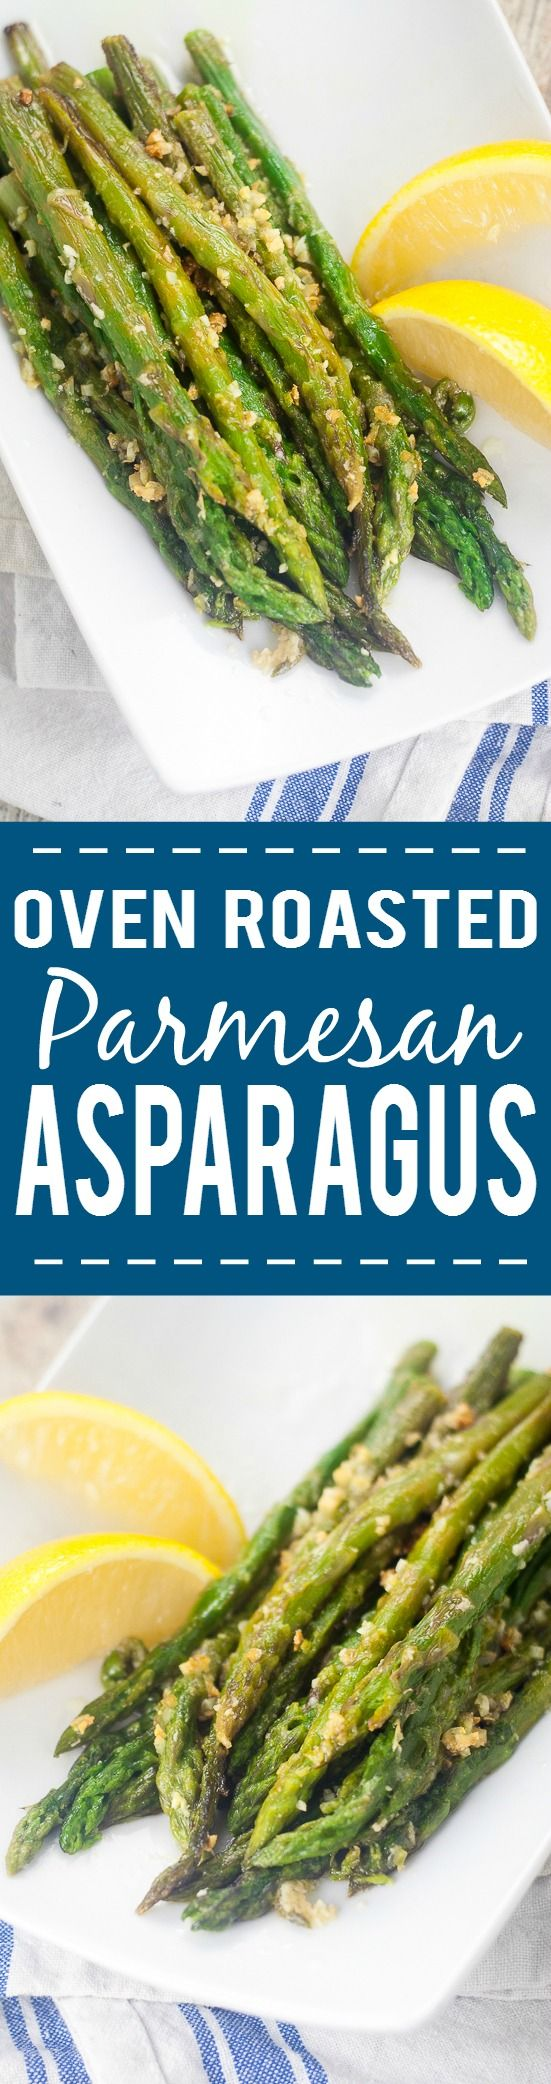 Oven Roasted Asparagus recipe -Oven Roasted Asparagus is a simple side dish that takes just minutes to prep. With garlic and Parmesan cheese, it's all fresh flavor and no hassle! Super easy side dish recipe that's super delicious too.